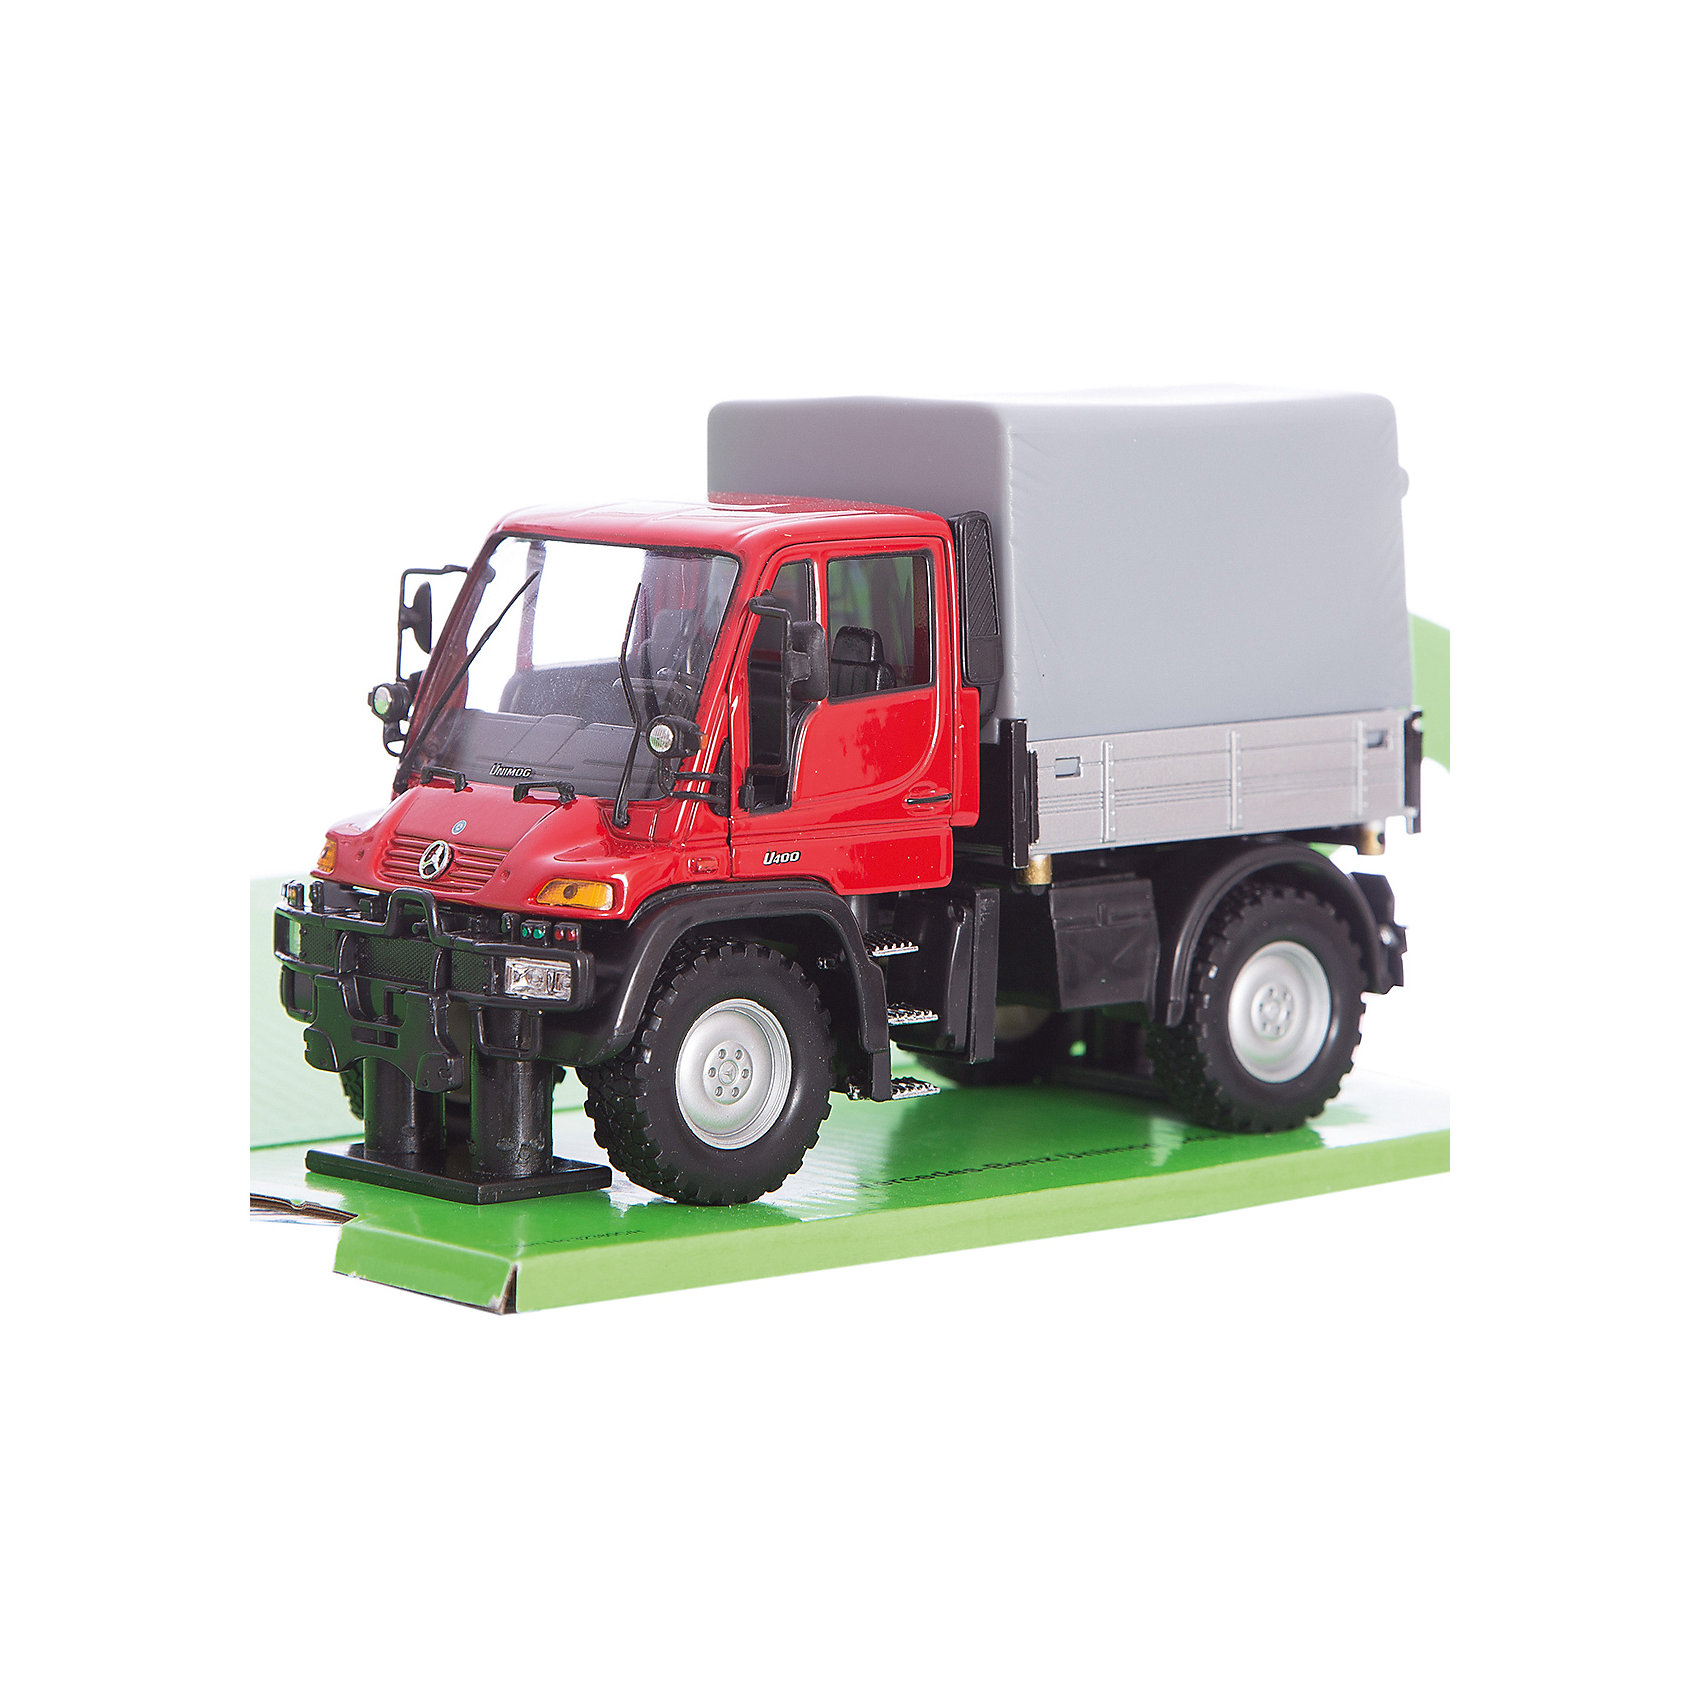 ������ ������ 1:32 Mercedes-Benz Unimog U400 � ��������, Welly